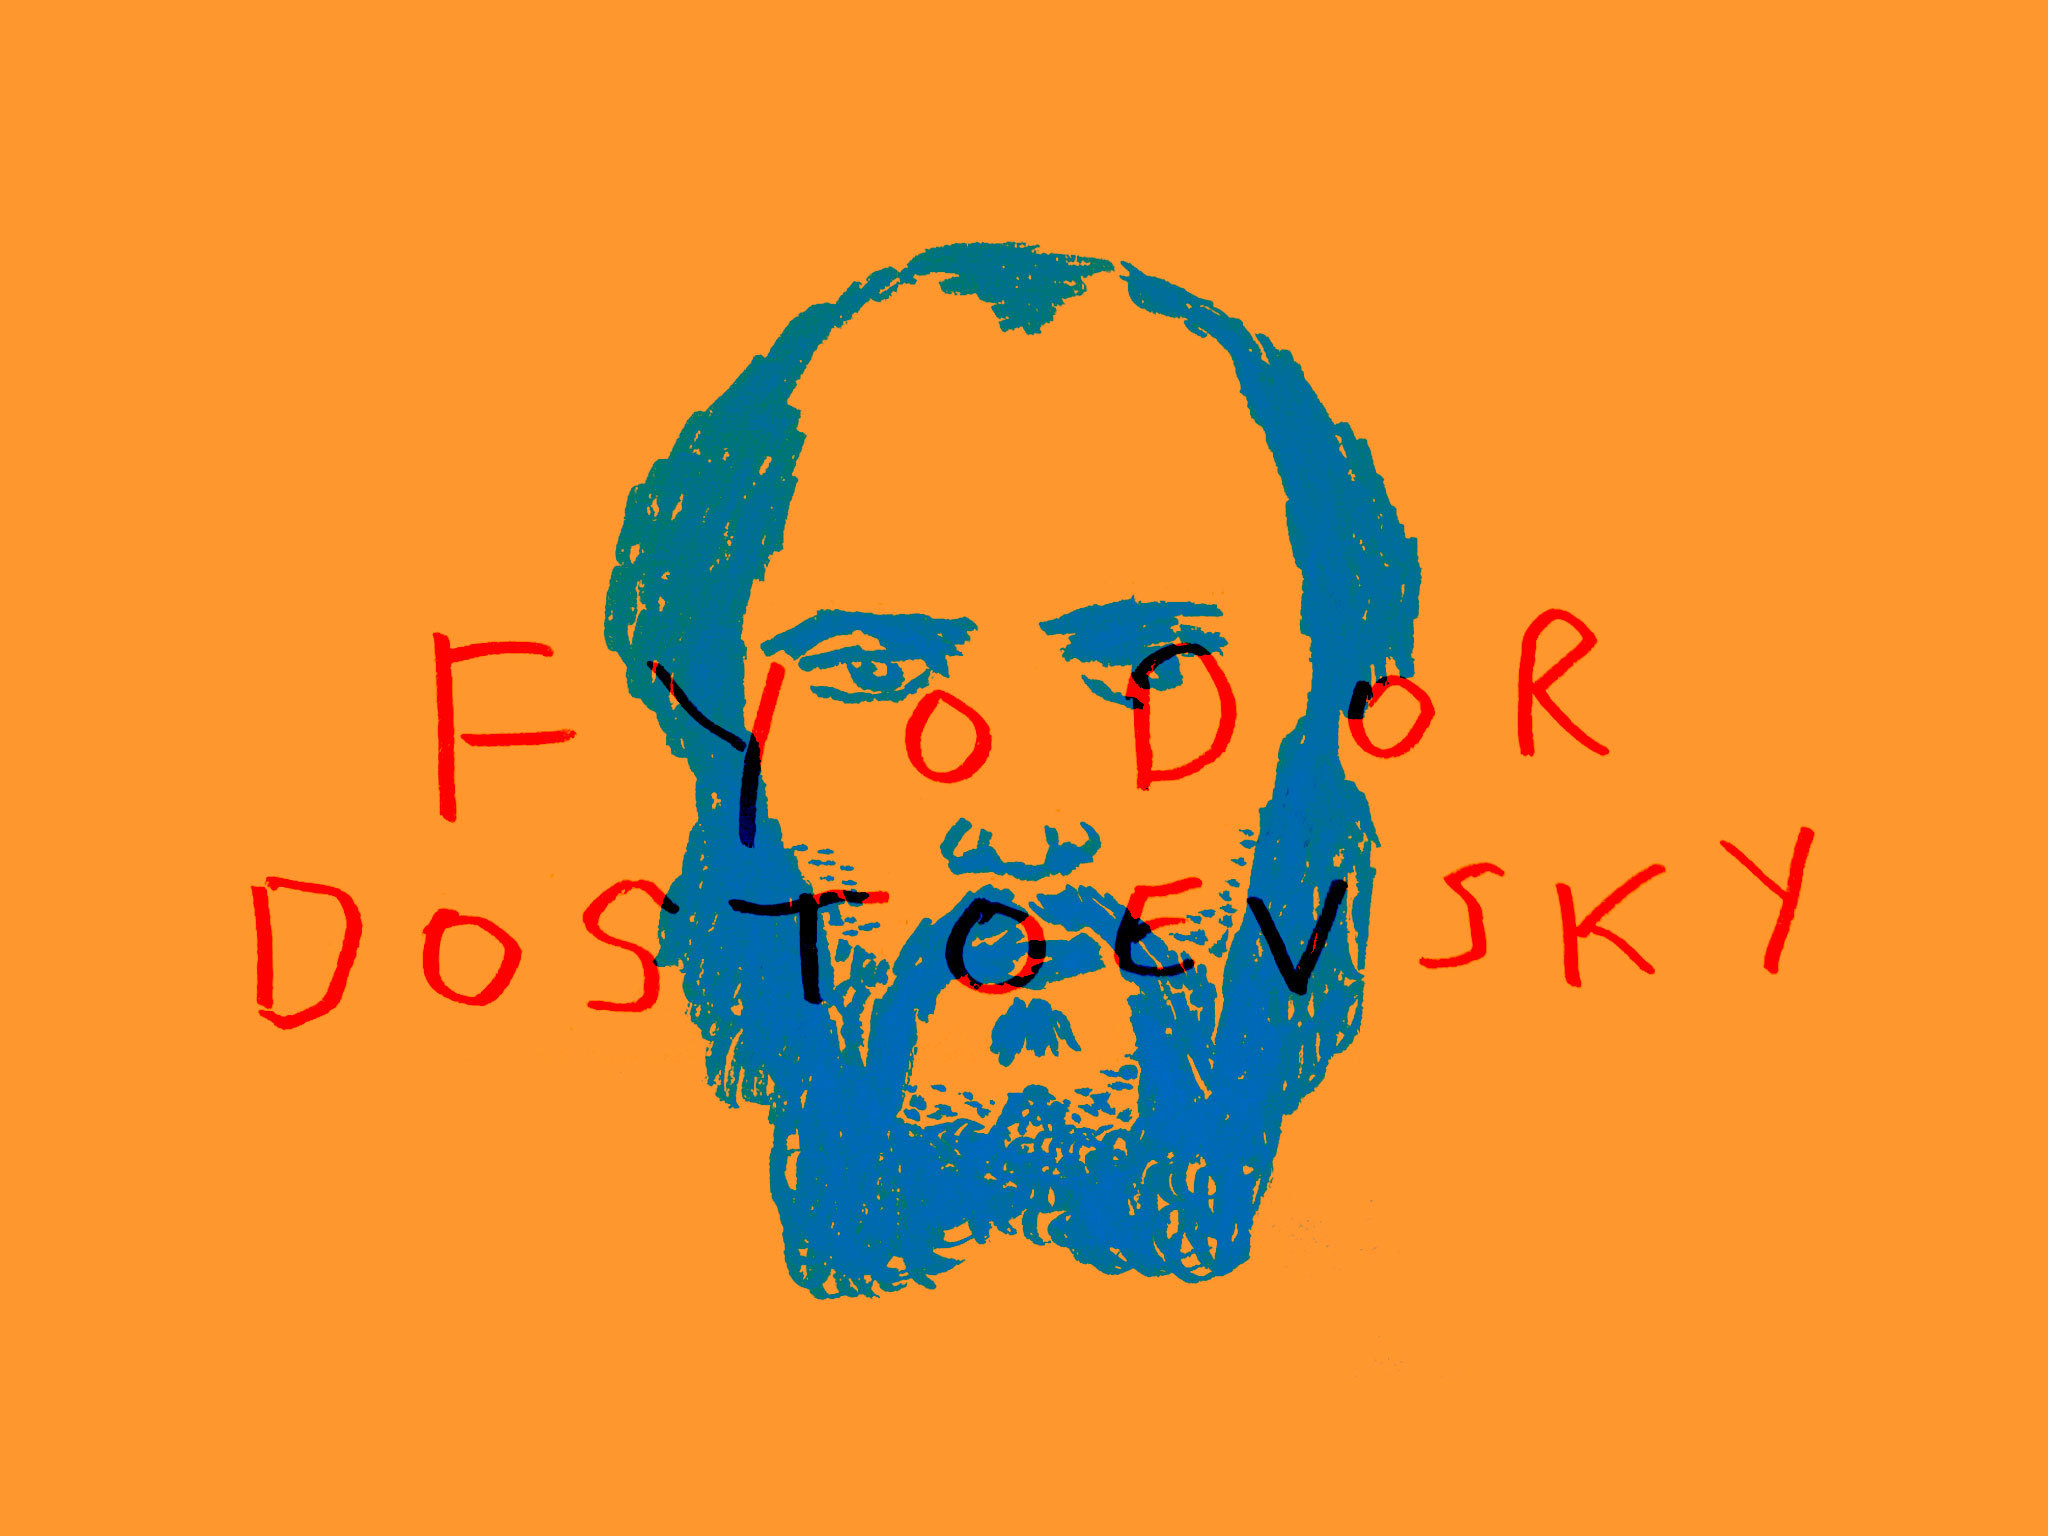 Where to get started with... Fyodor Dostoevsky